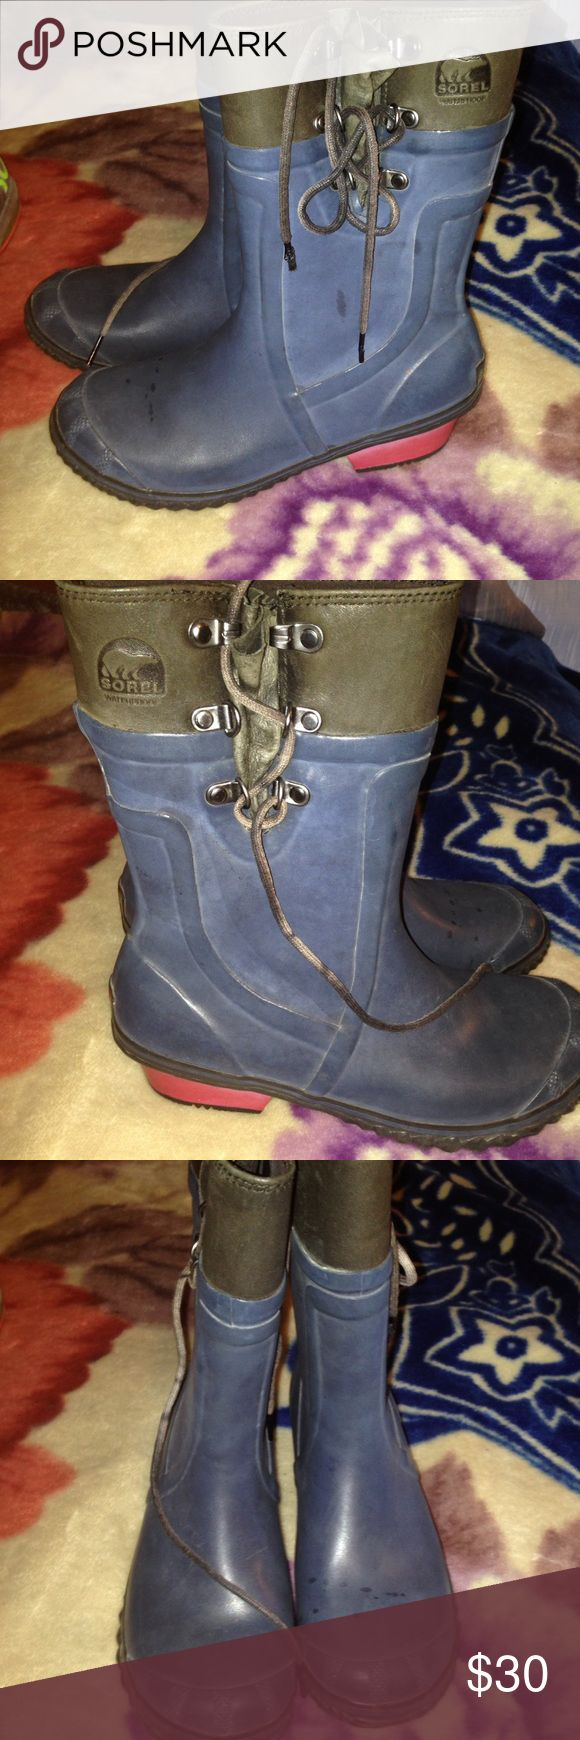 Women slate blue grey SOREL Rubber rain boots 7 Gently used condition,soles are excellent and the uppers do show some signs of use but are still great condition,grey and steel/slate blue with red heels and side laceup  detail , sz 7 women's ,sorel brand Sorel Shoes Winter & Rain Boots